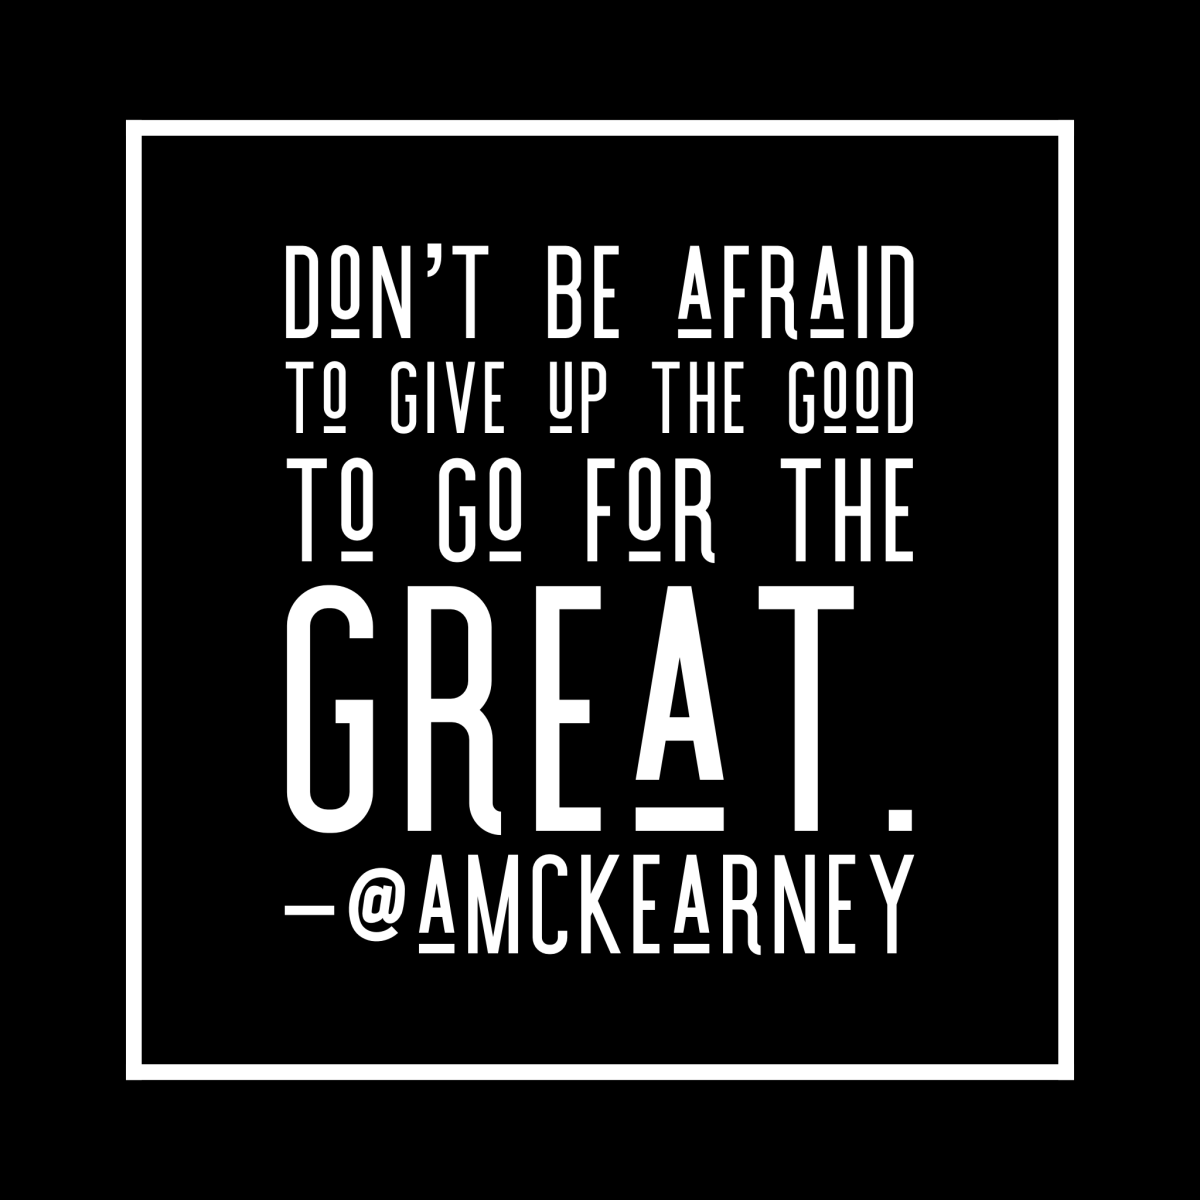 Don't be afraid to give up the good.